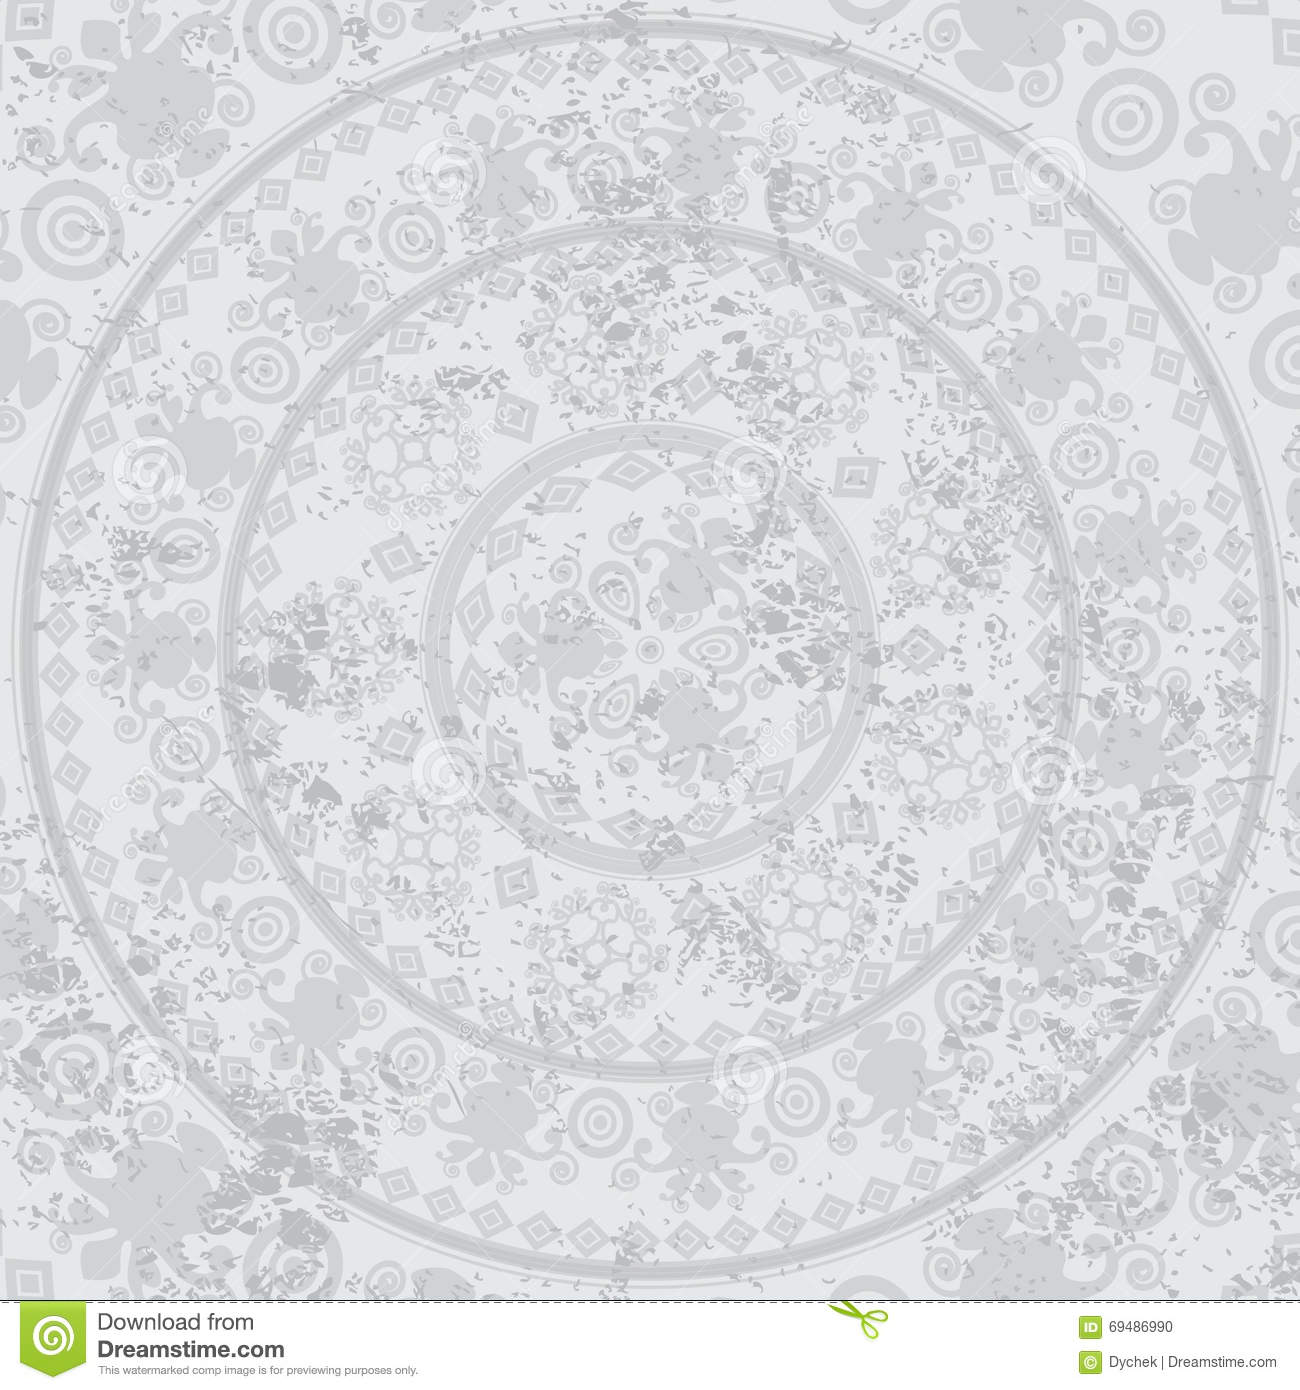 Must see Wallpaper Marble Mandala - mandala-marble-background-design-printing-products-paper-fabric-ceramics-69486990  Perfect Image Reference_45618.jpg